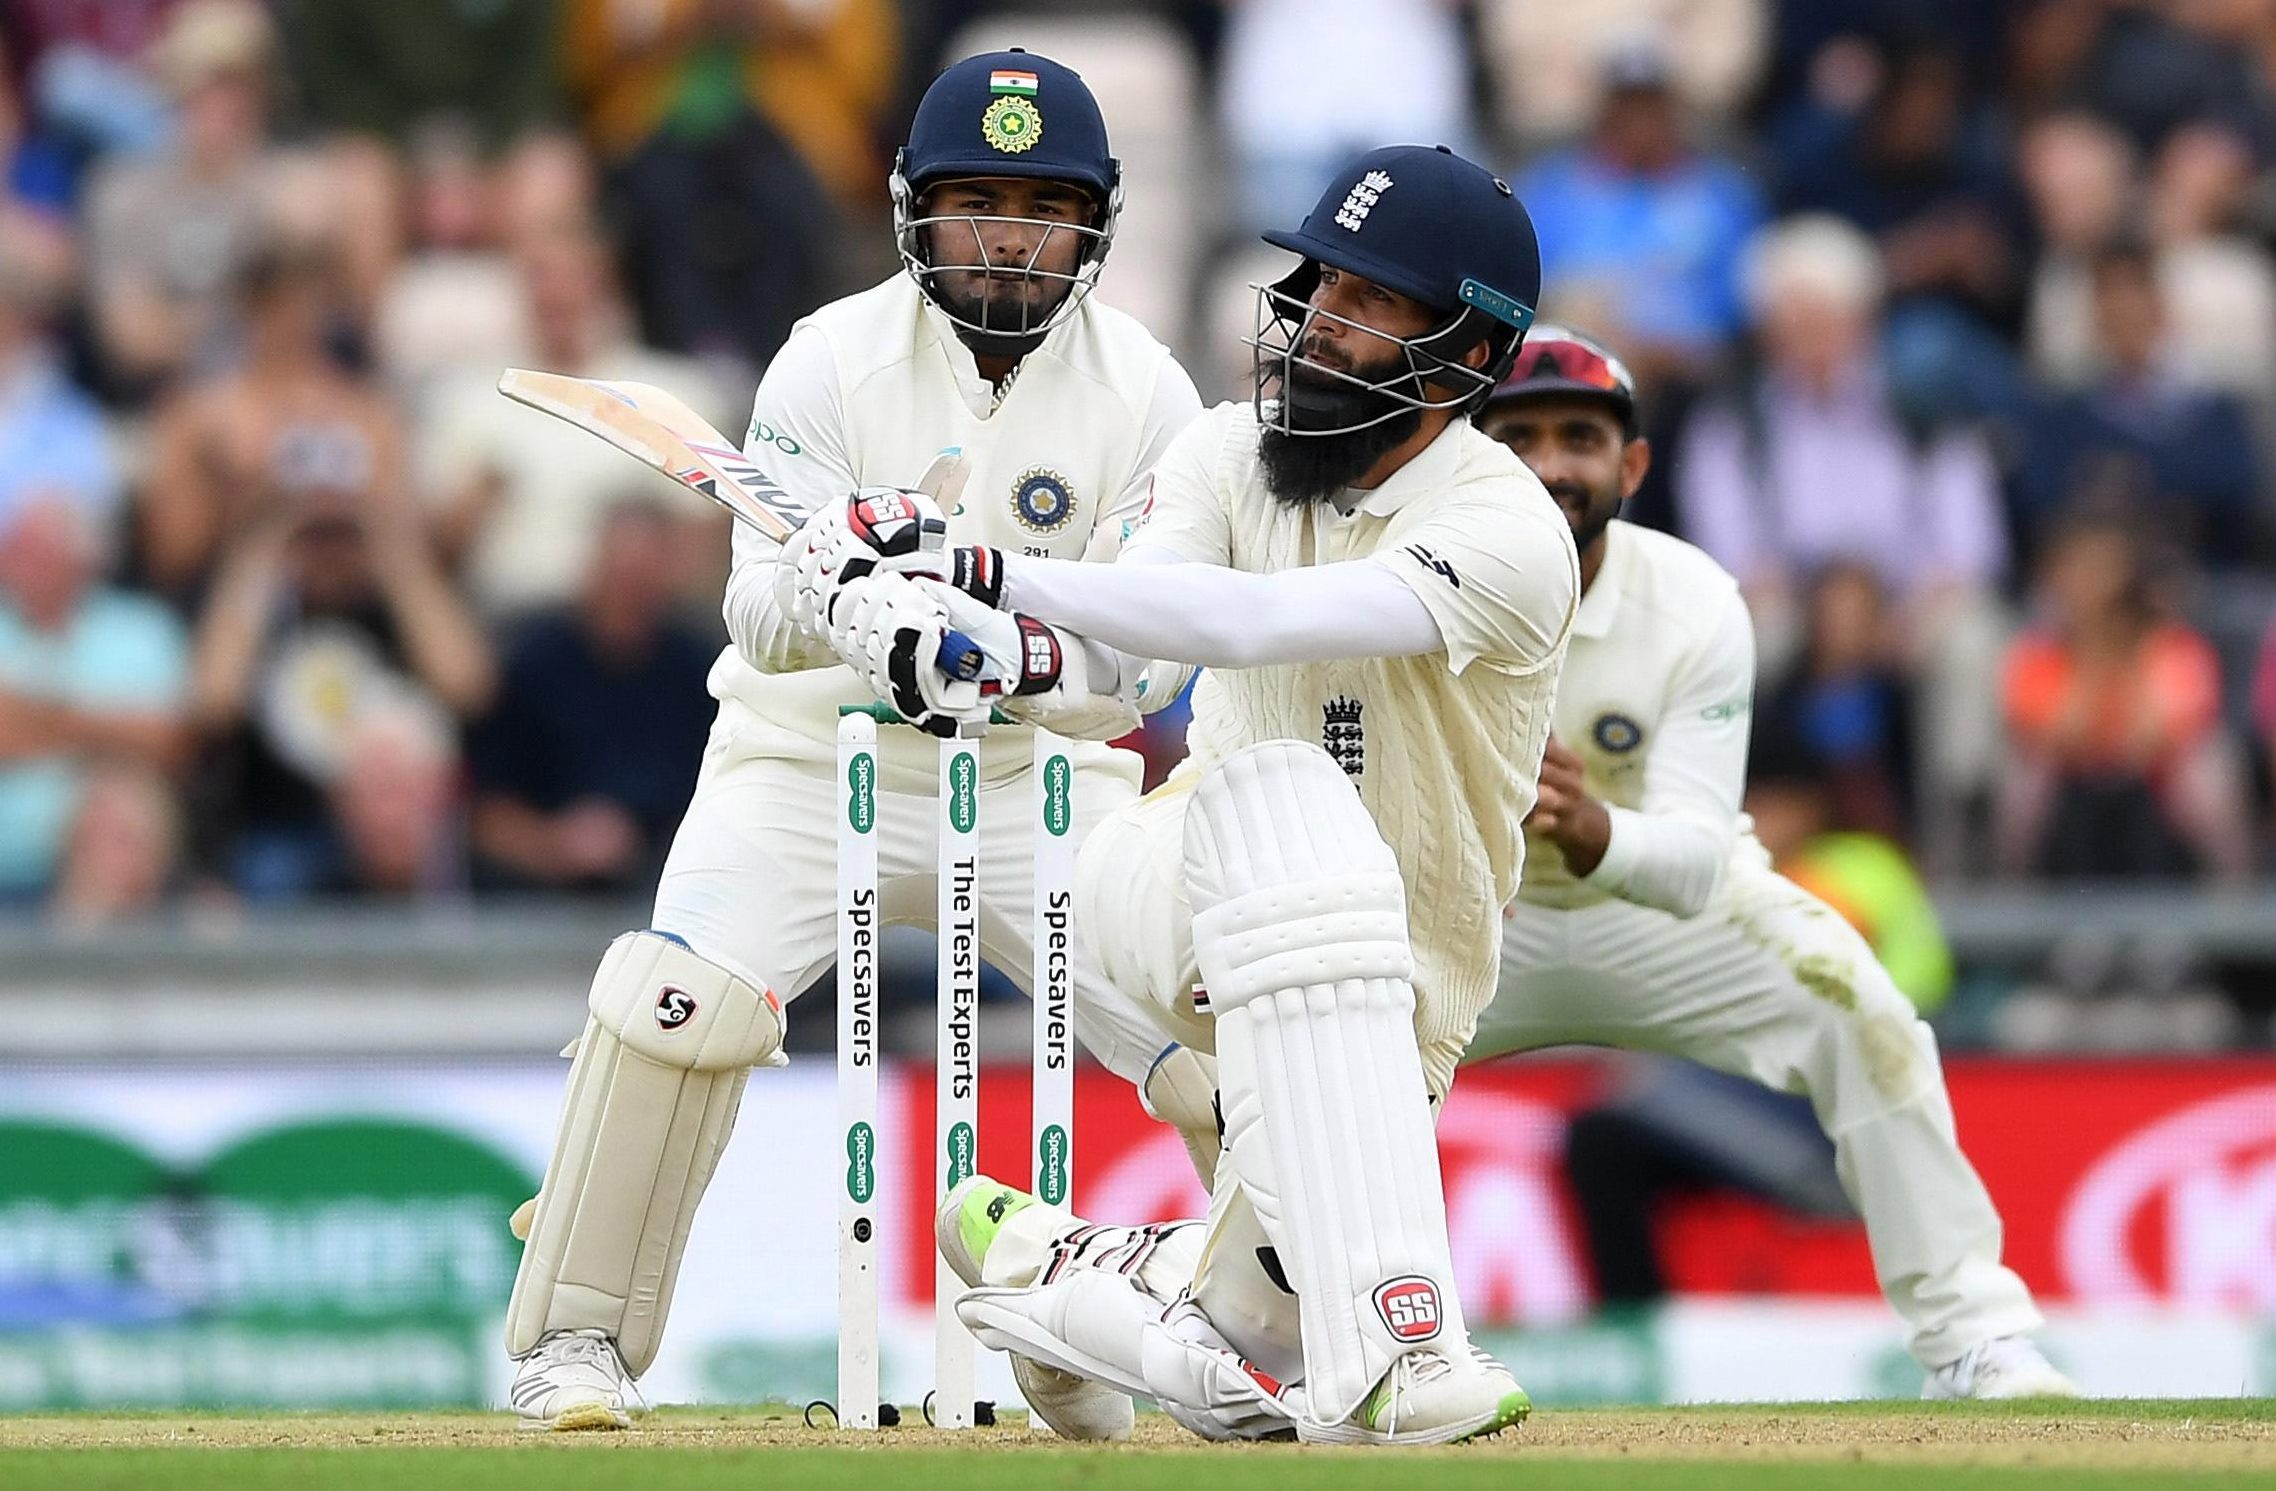 Joe Root asked Moeen to bat at 3 in the second innings at the Ageas Bowl